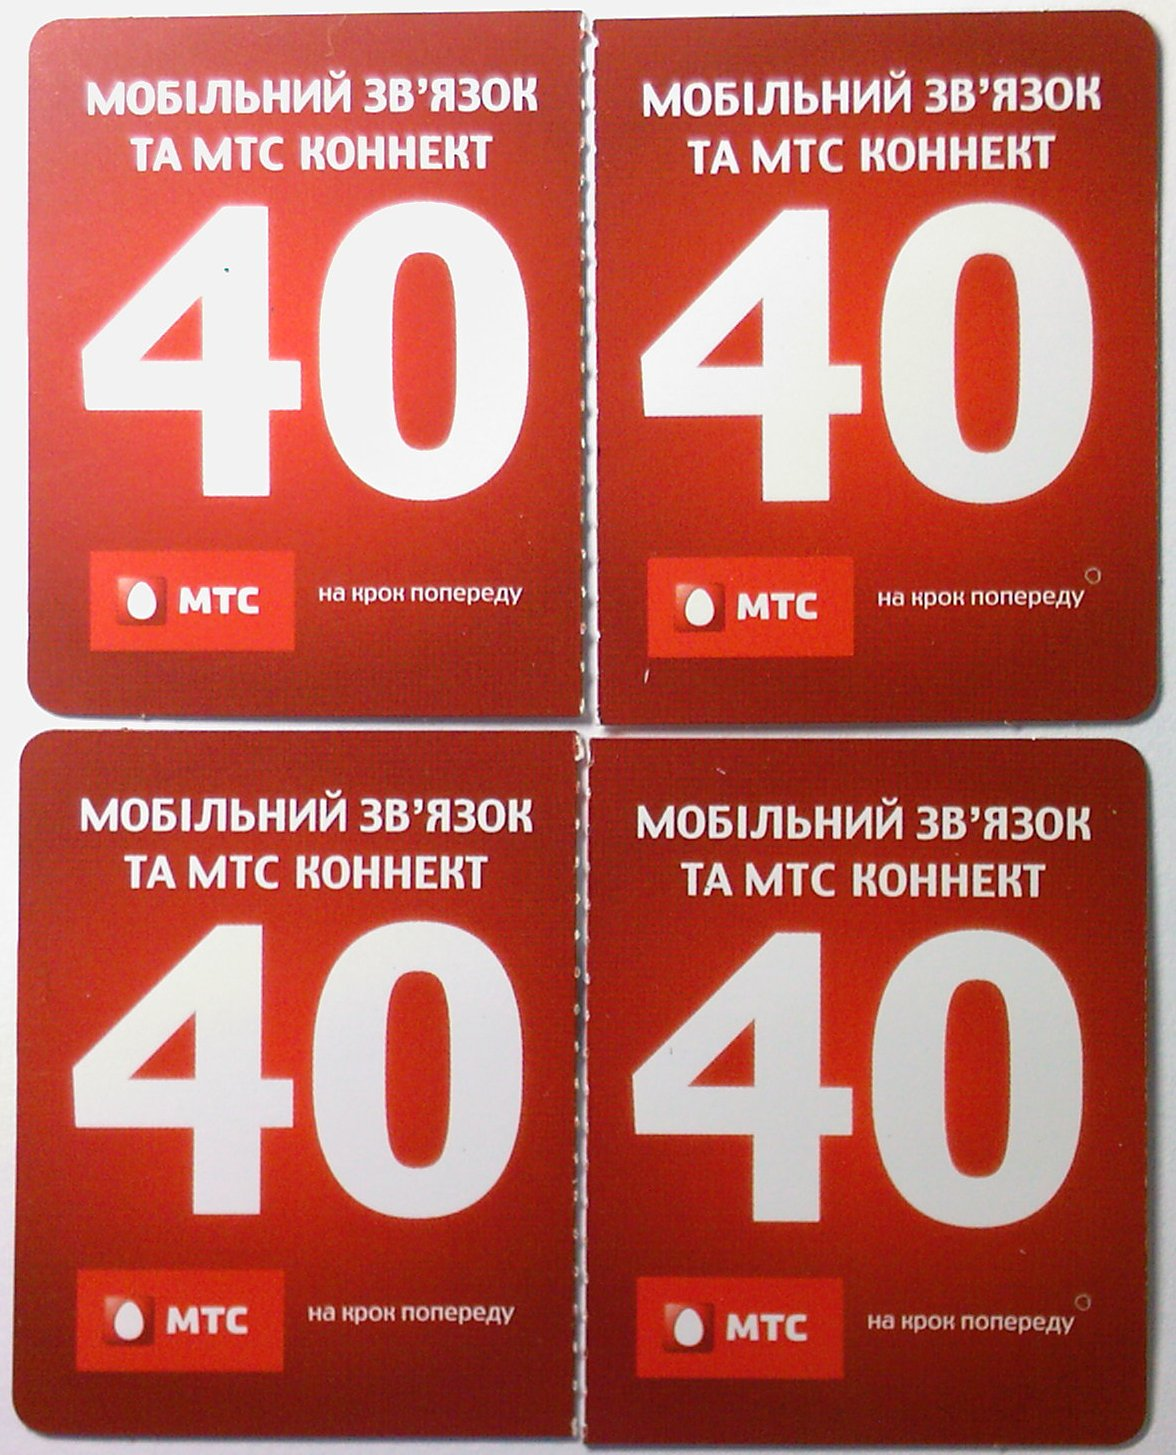 MTS voucher for 40 UAH. MTS Ukraine